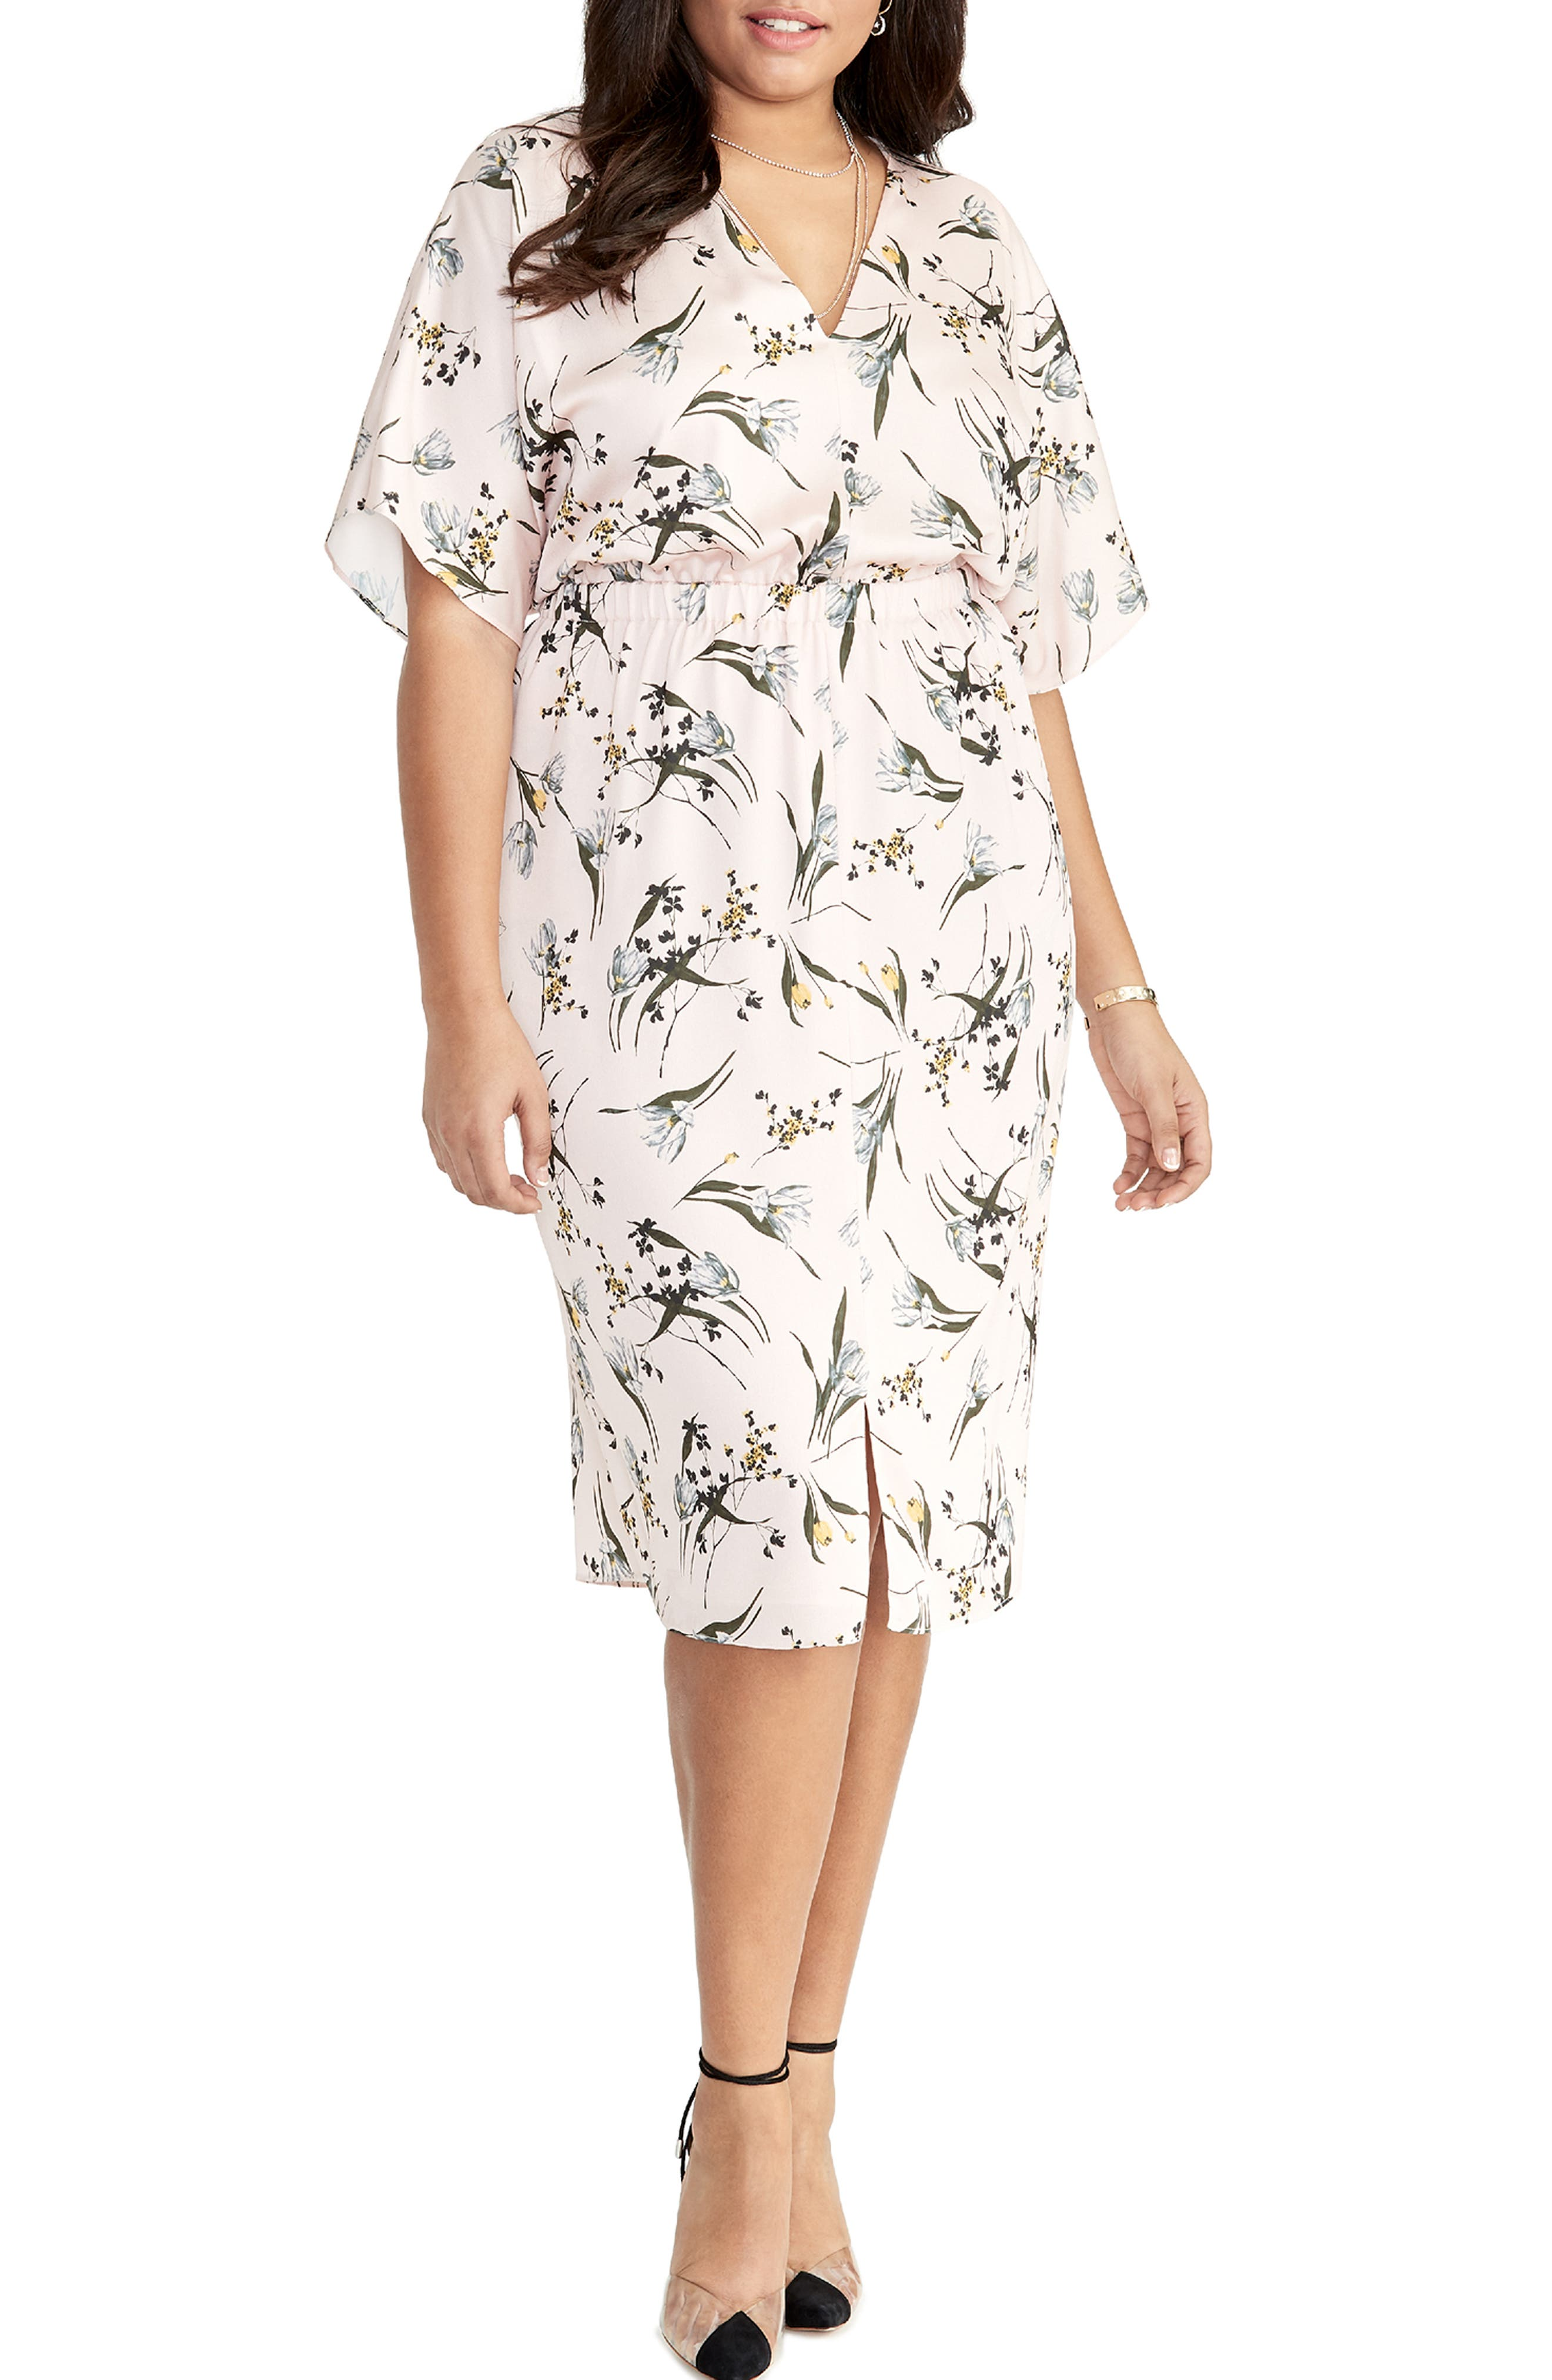 61c63da3b4 Plus Size Rachel Rachel Roy Cait Tea Rose Print Dress